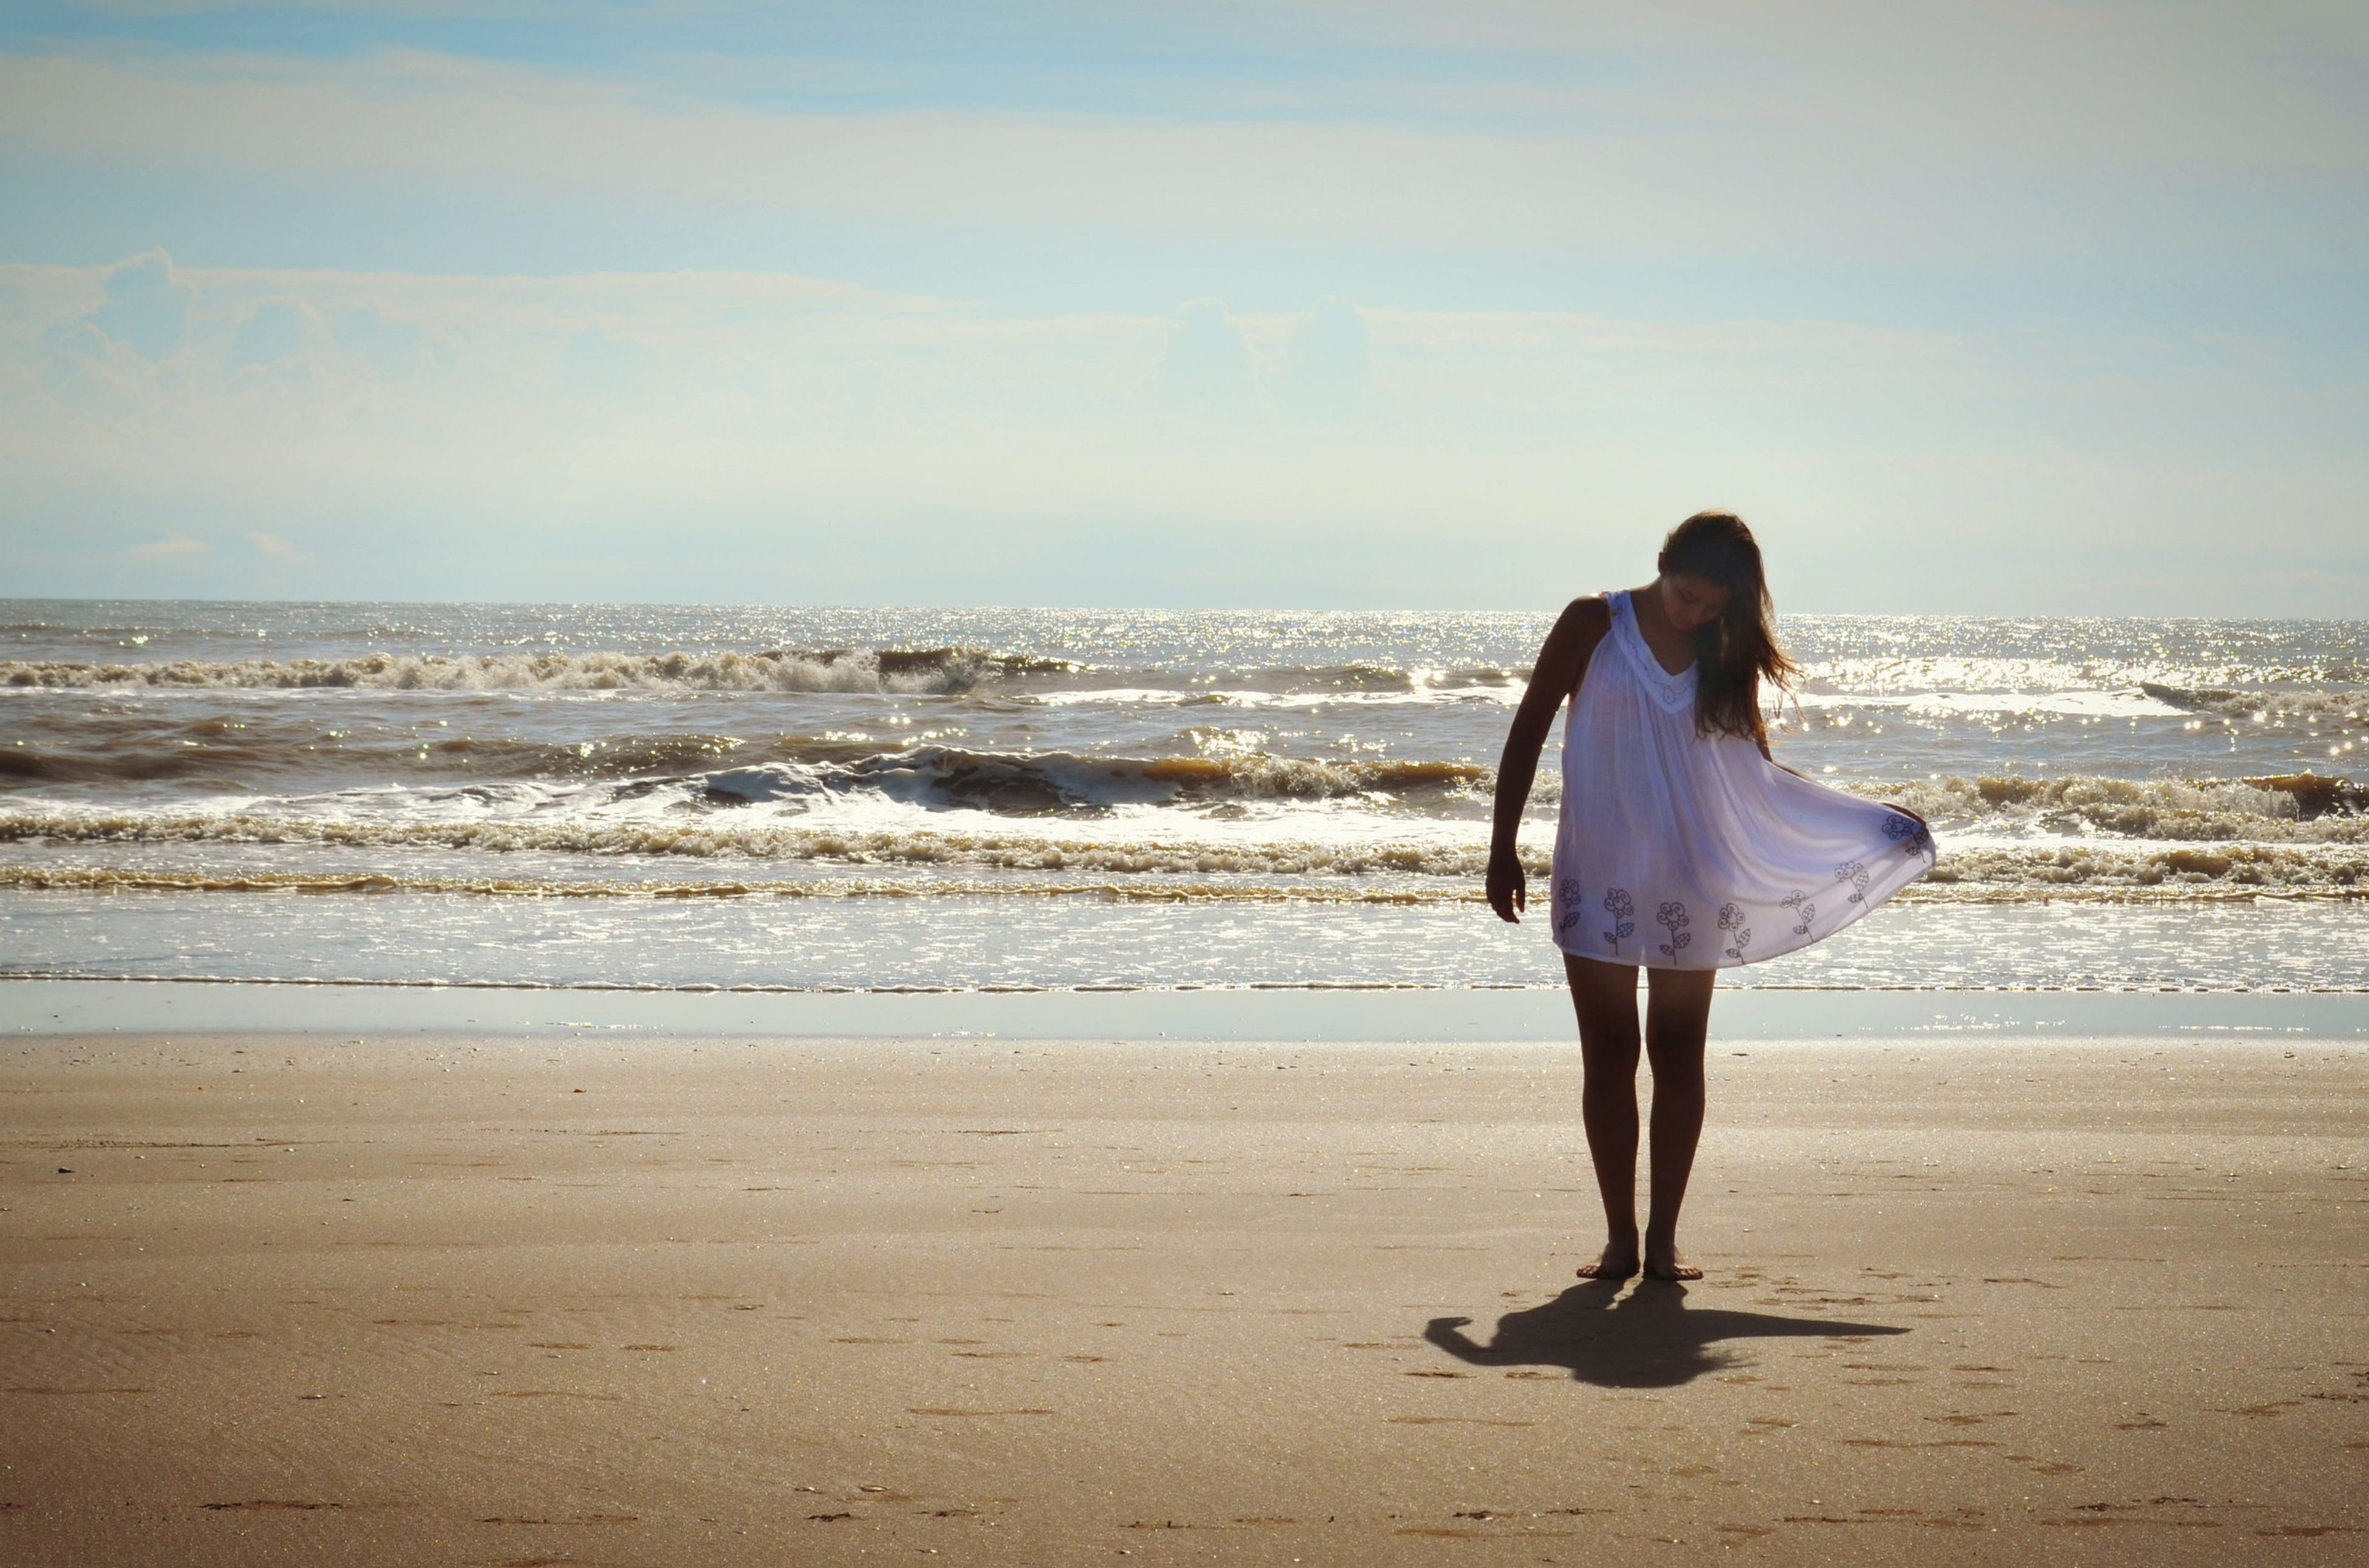 beach, sea, full length, lifestyles, shore, rear view, leisure activity, water, sky, casual clothing, standing, sand, horizon over water, tranquil scene, vacations, tranquility, beauty in nature, scenics